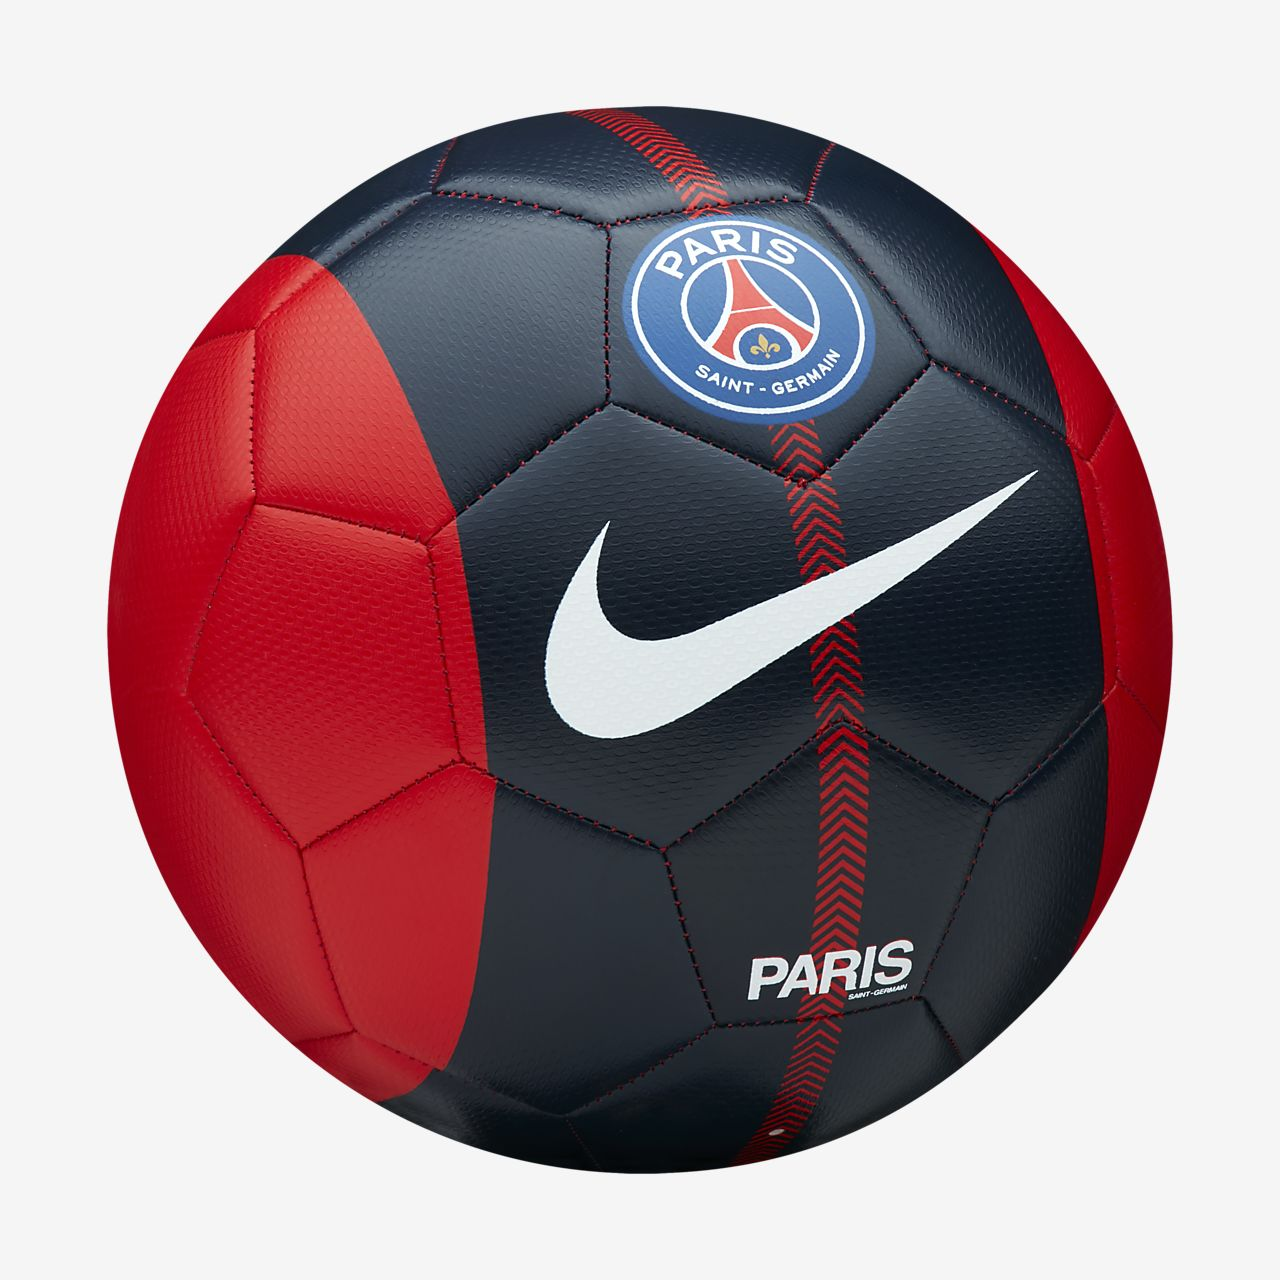 Paris Saint-Germain Prestige Voetbal